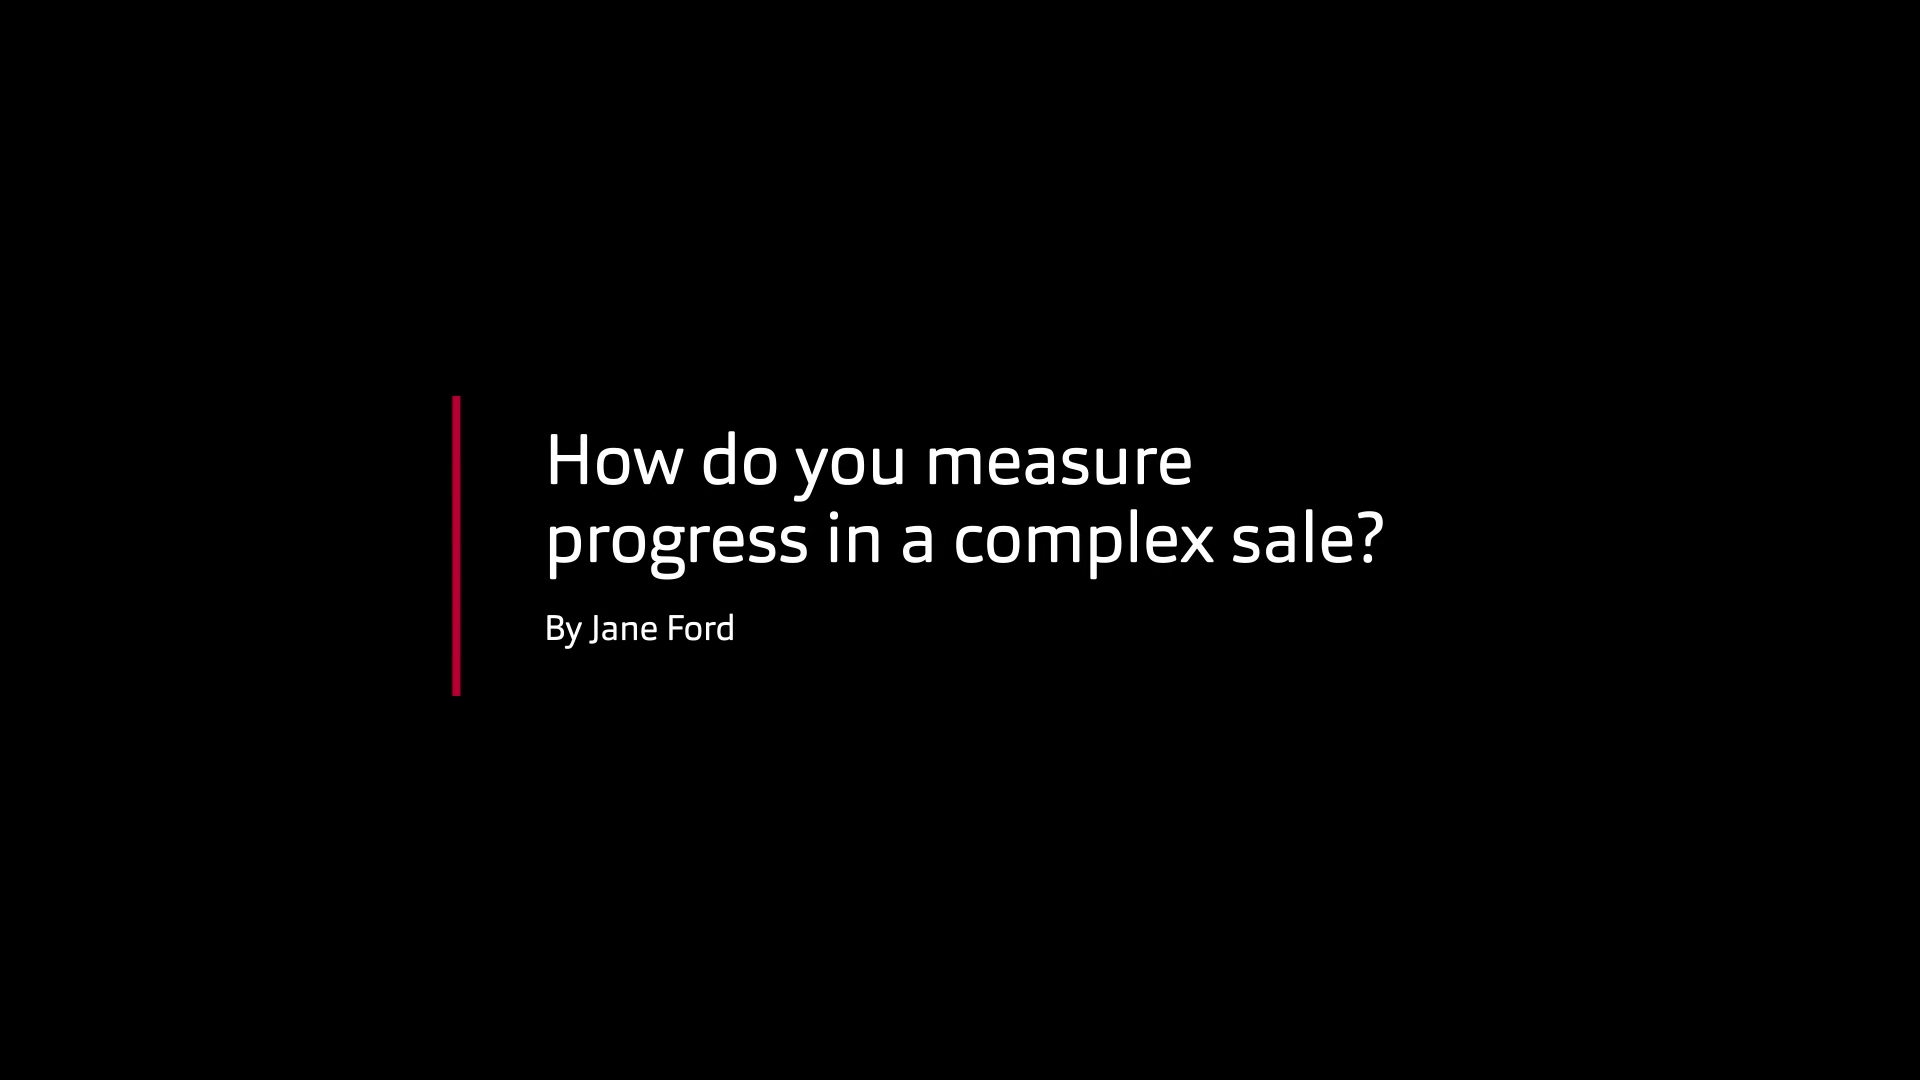 Jane Ford - Making progress in a complex sale